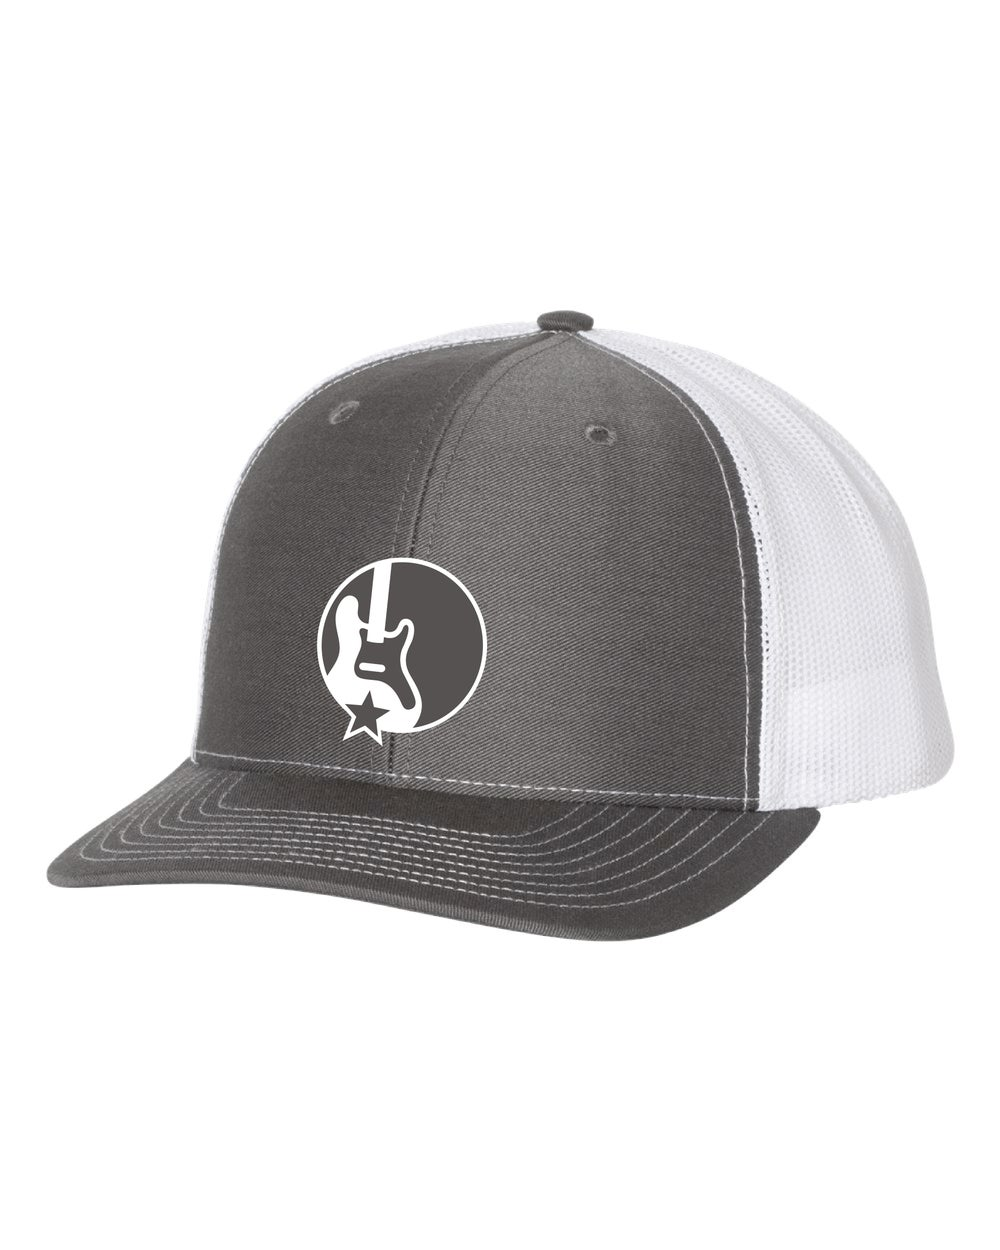 Band Together Trucker Hat Charcoal / White